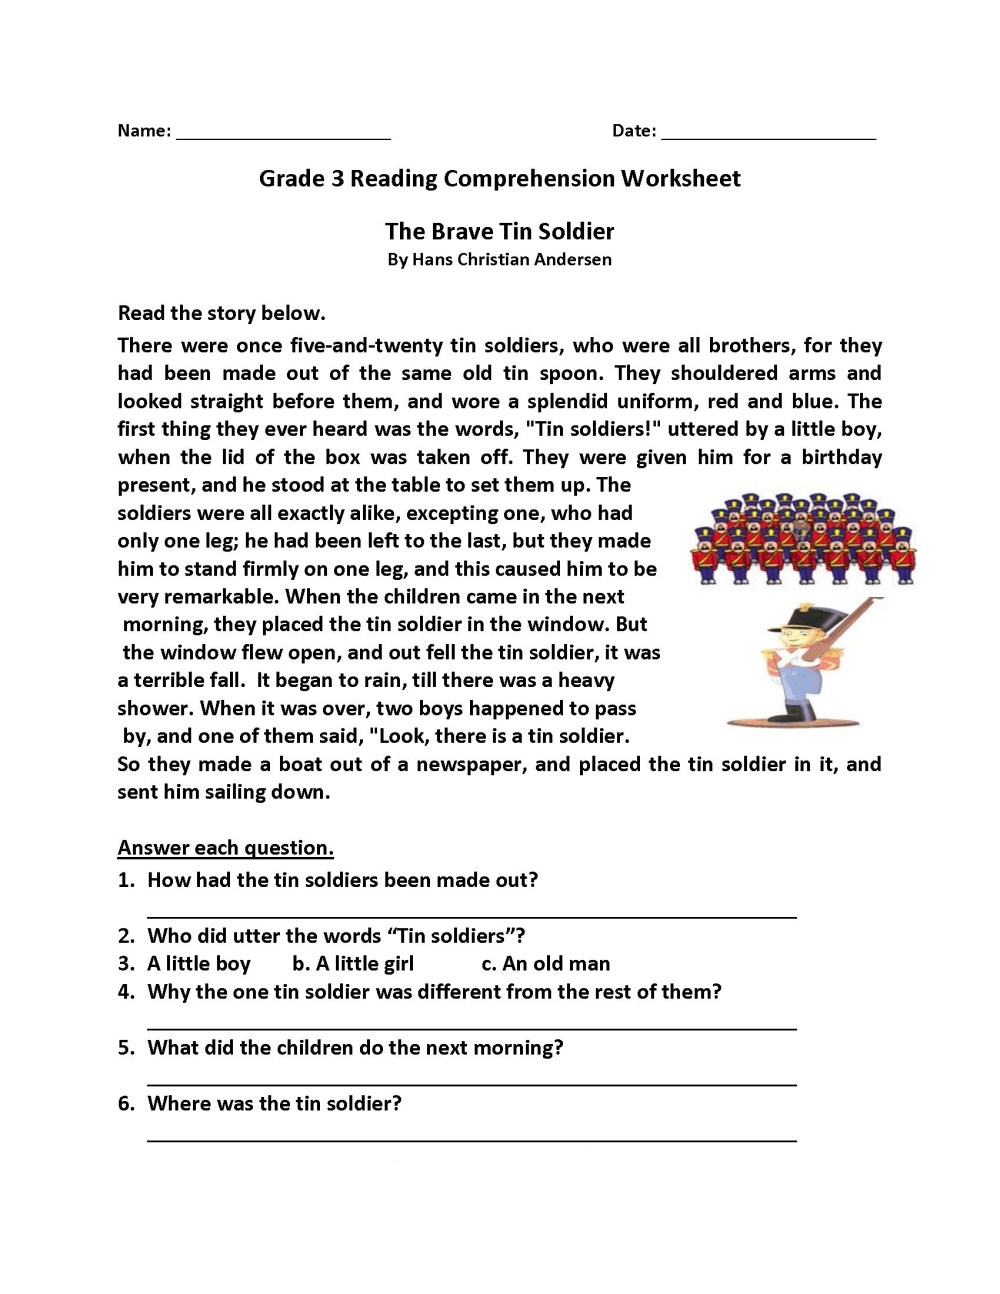 medium resolution of 27 Best Comprehension Worksheets 3rd Grade images on Worksheets Ideas